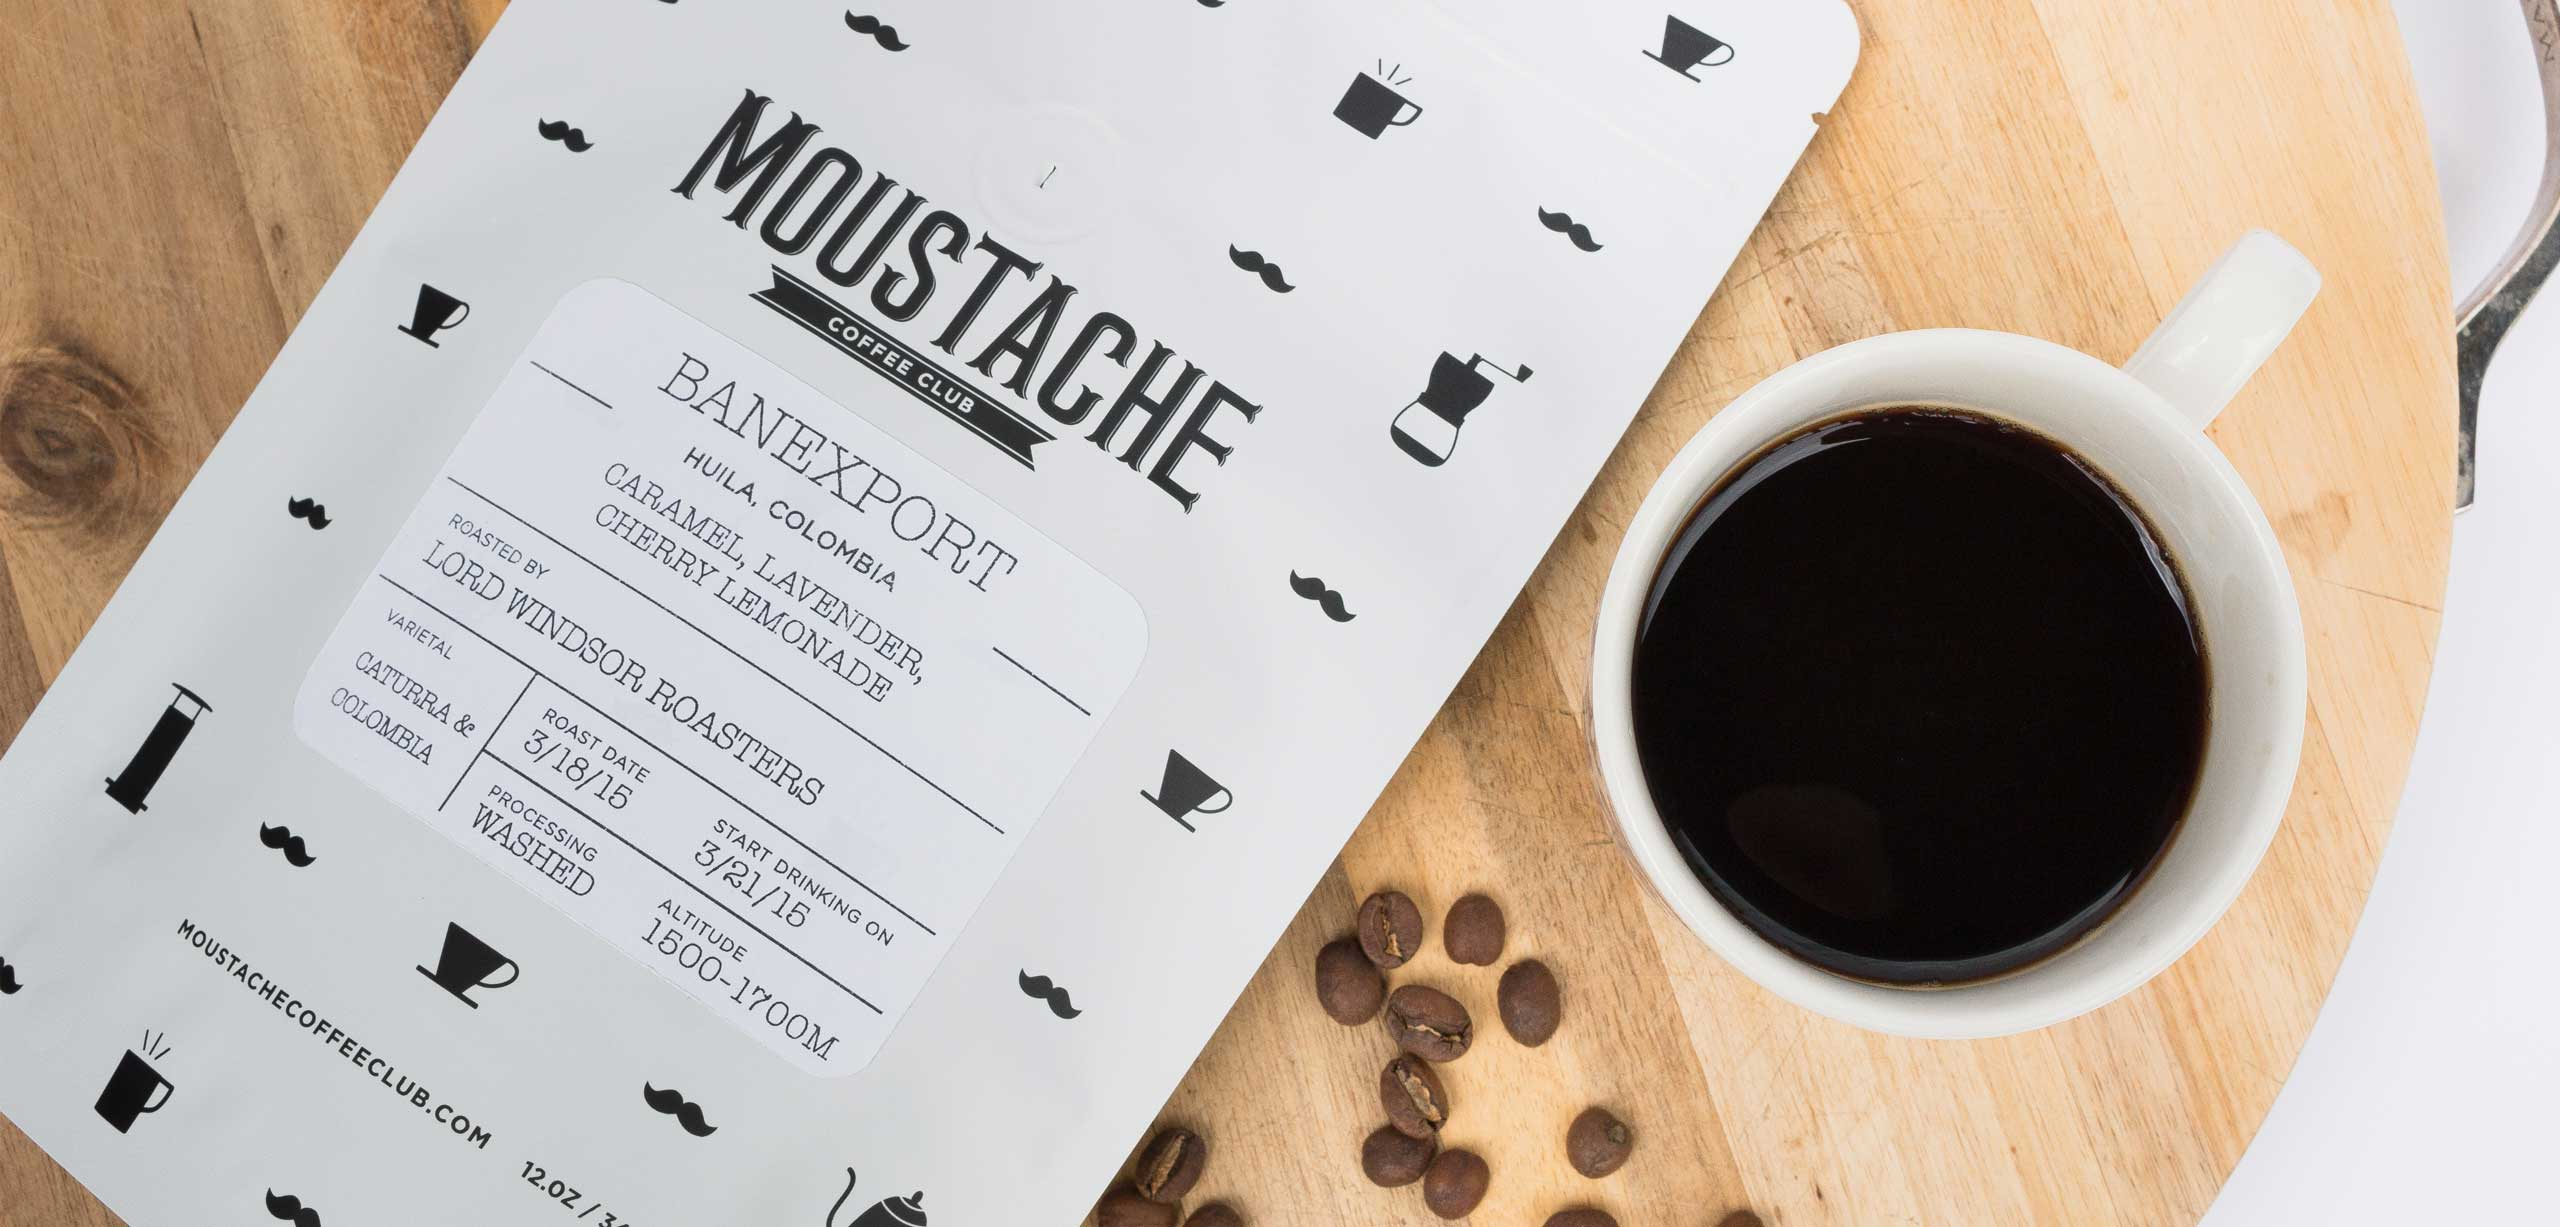 Moustache Coffee Club packaging design with coffee mug close up